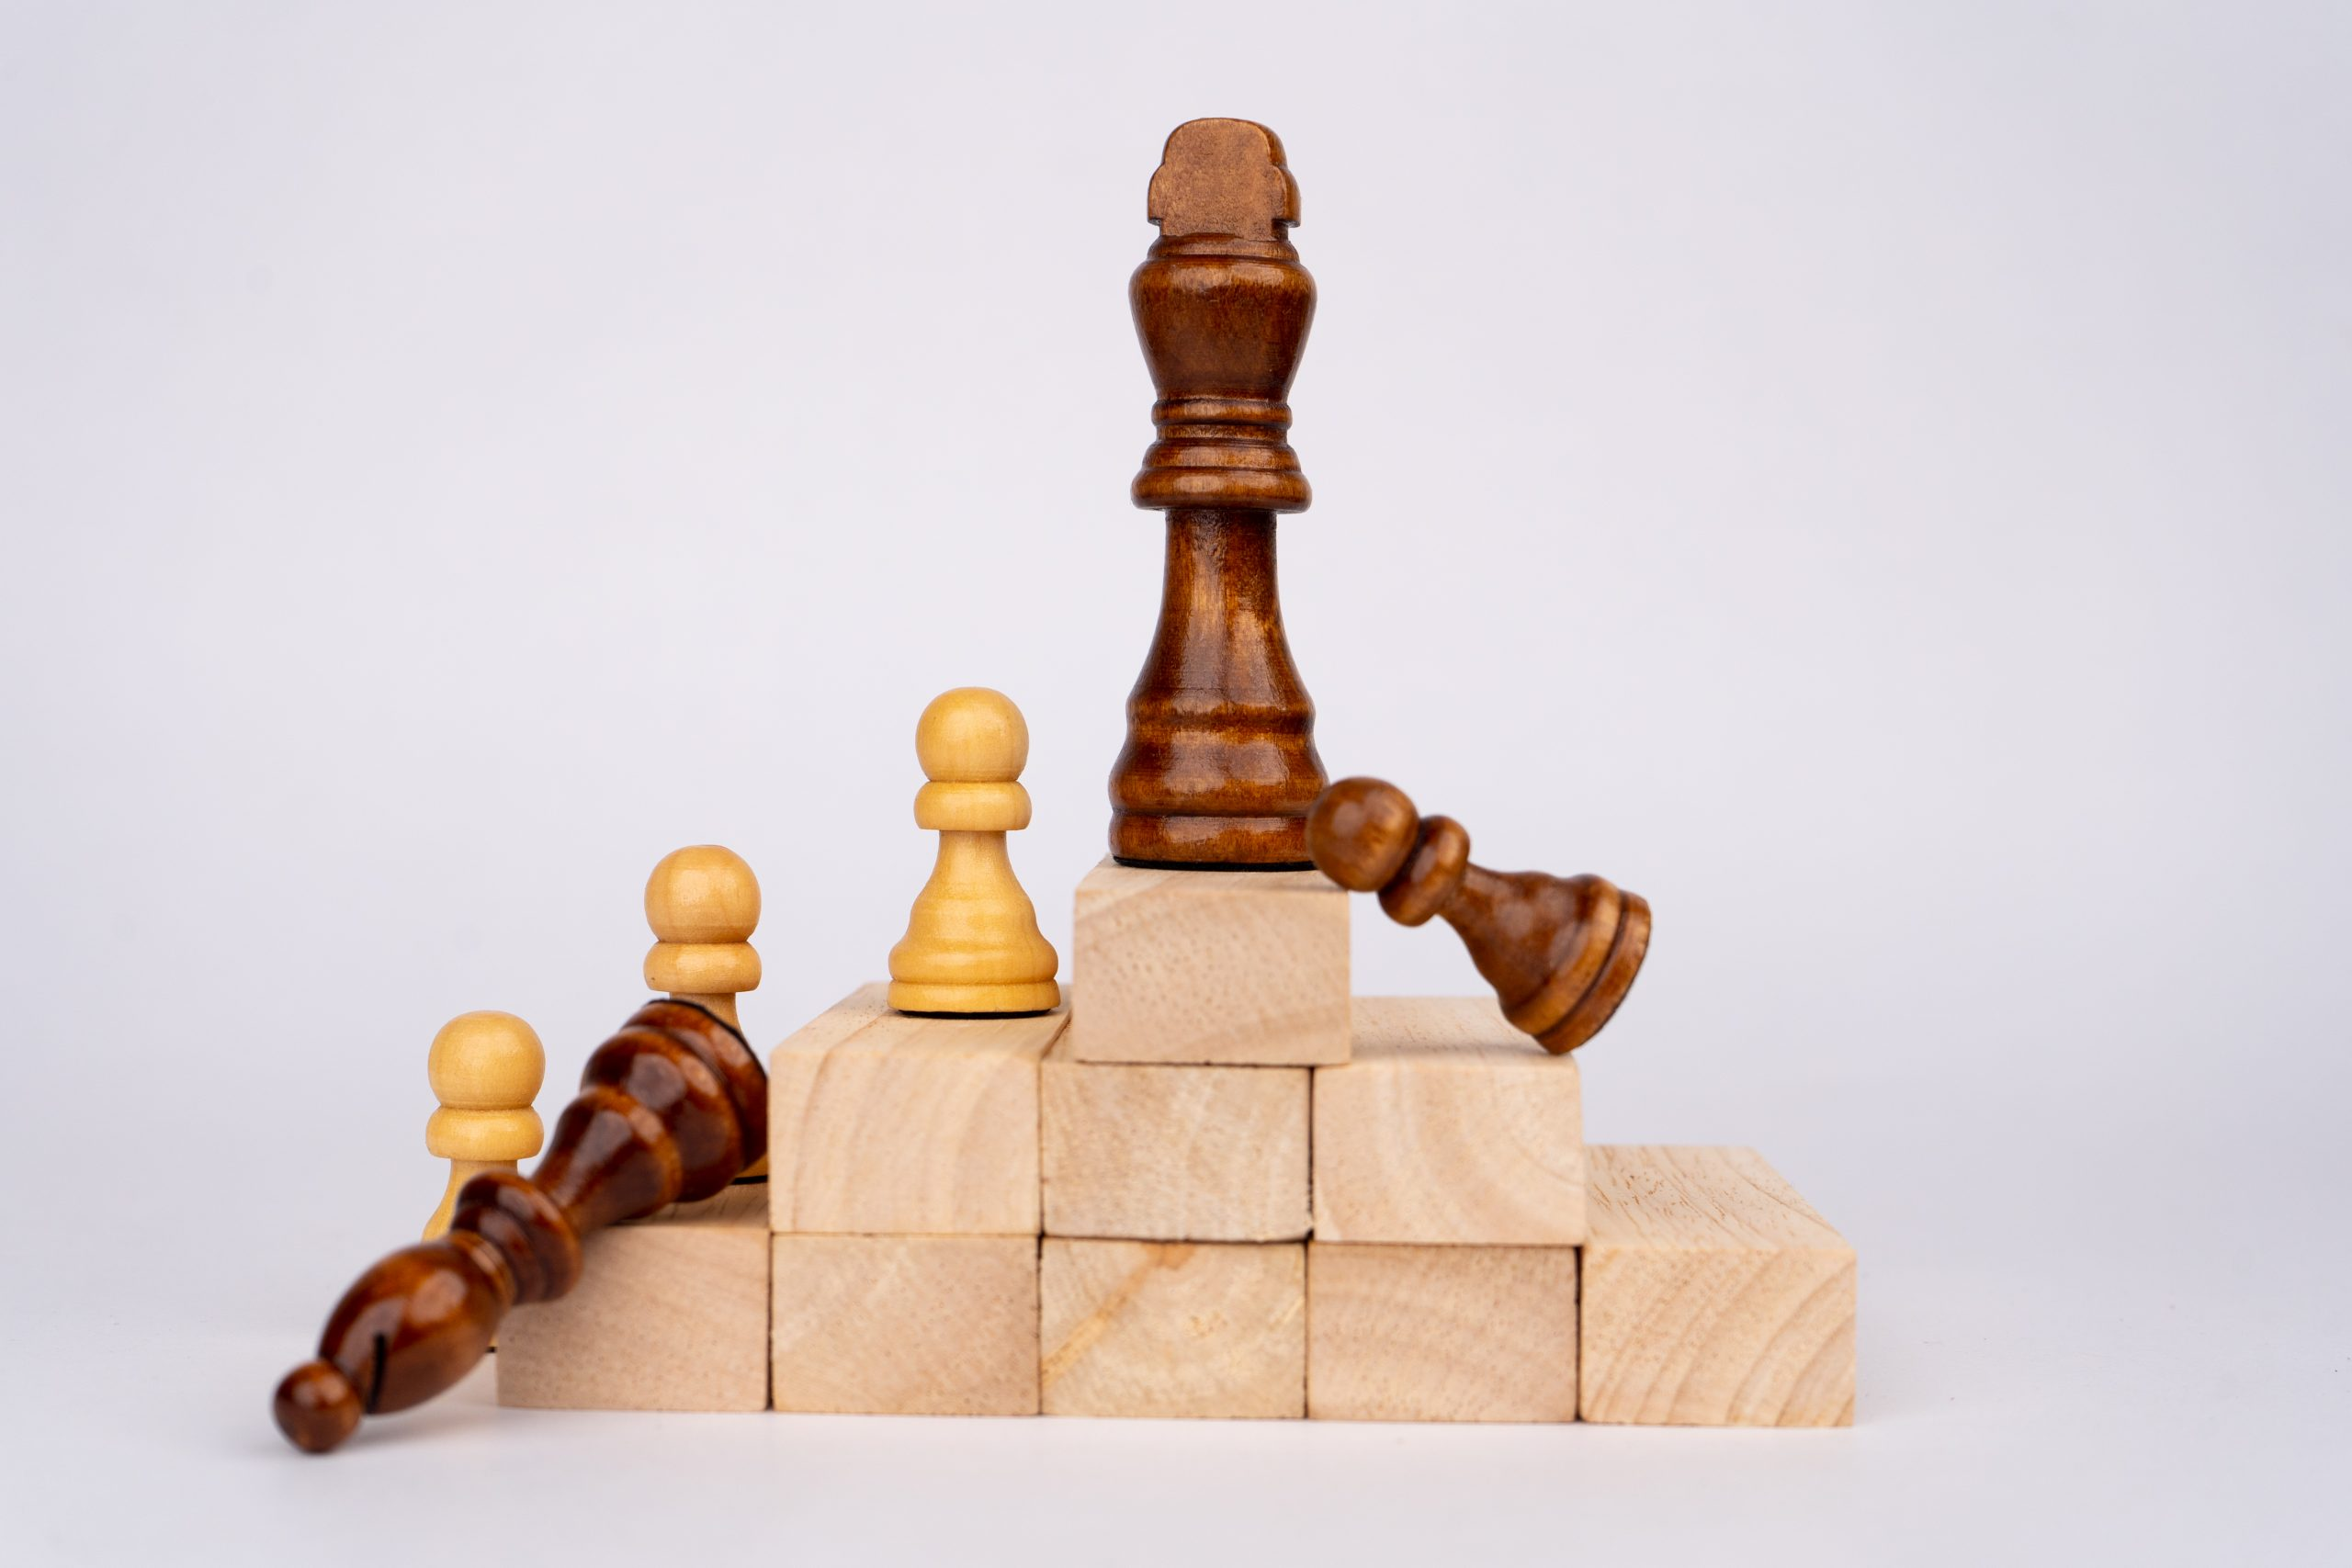 Chess pieces formation on wooden blocks